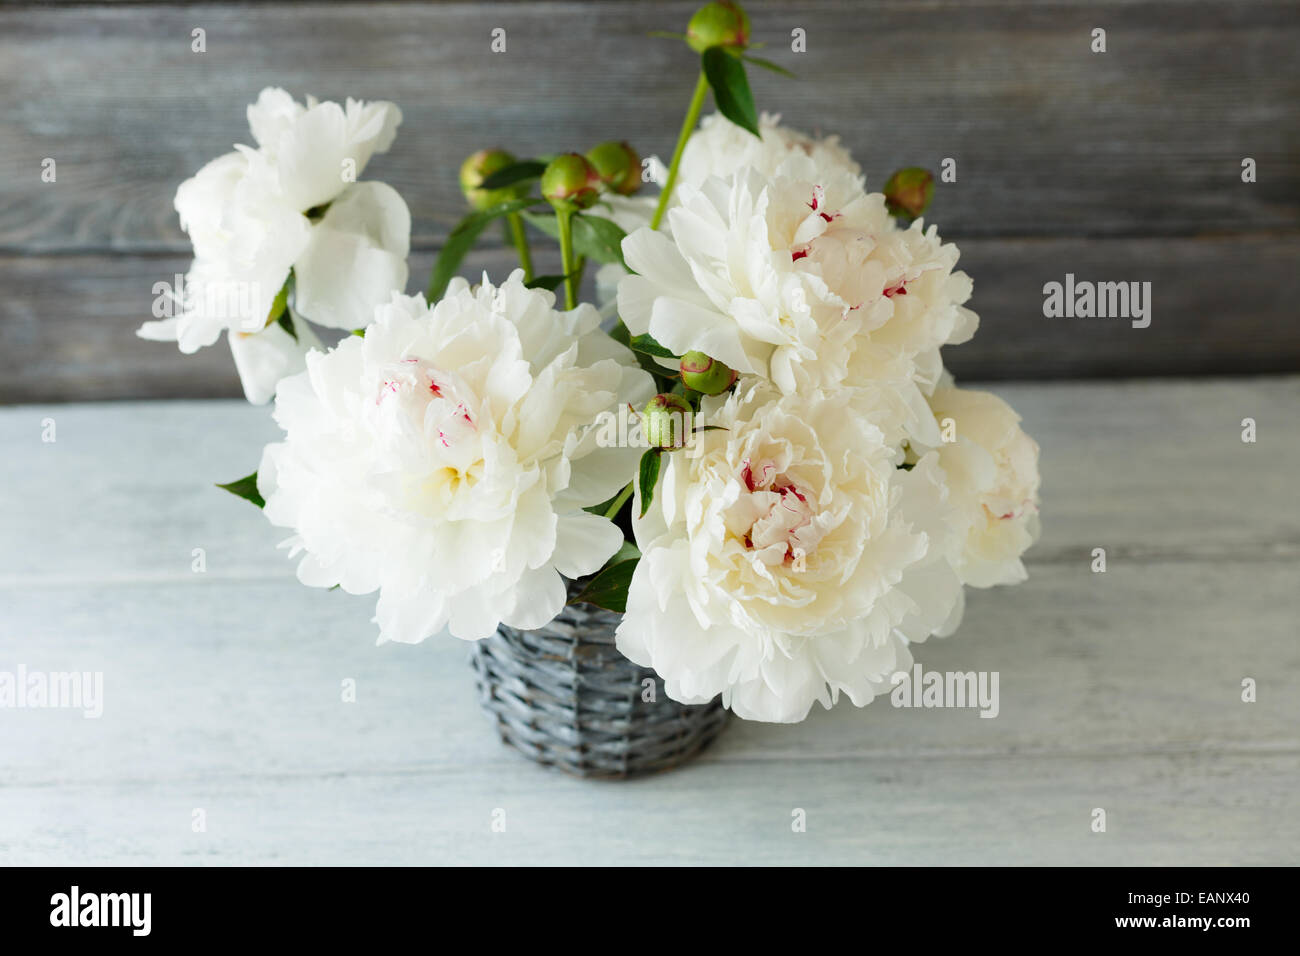 White peonies in a vase on the boards, wooden background - Stock Image